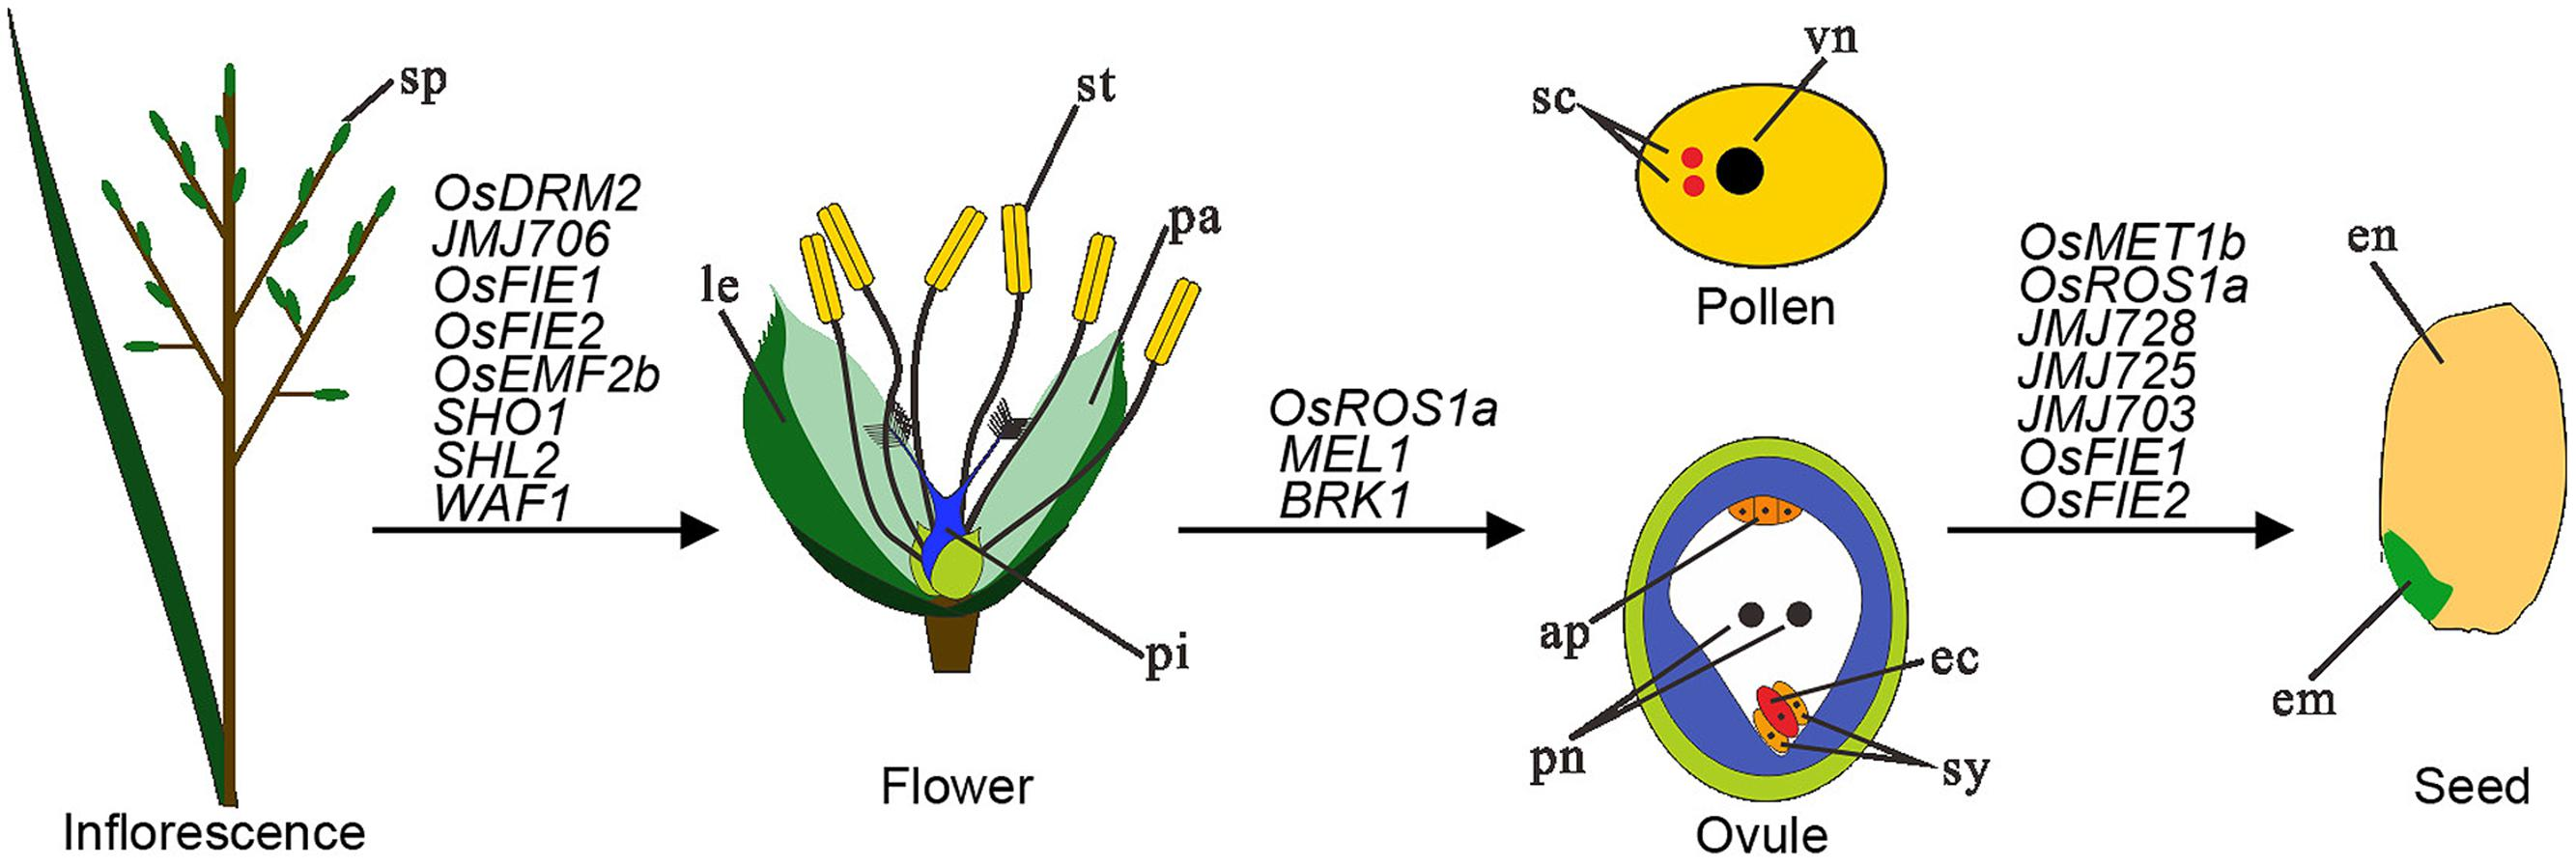 Frontiers Epigenetic Regulation Of Rice Flowering And Reproduction